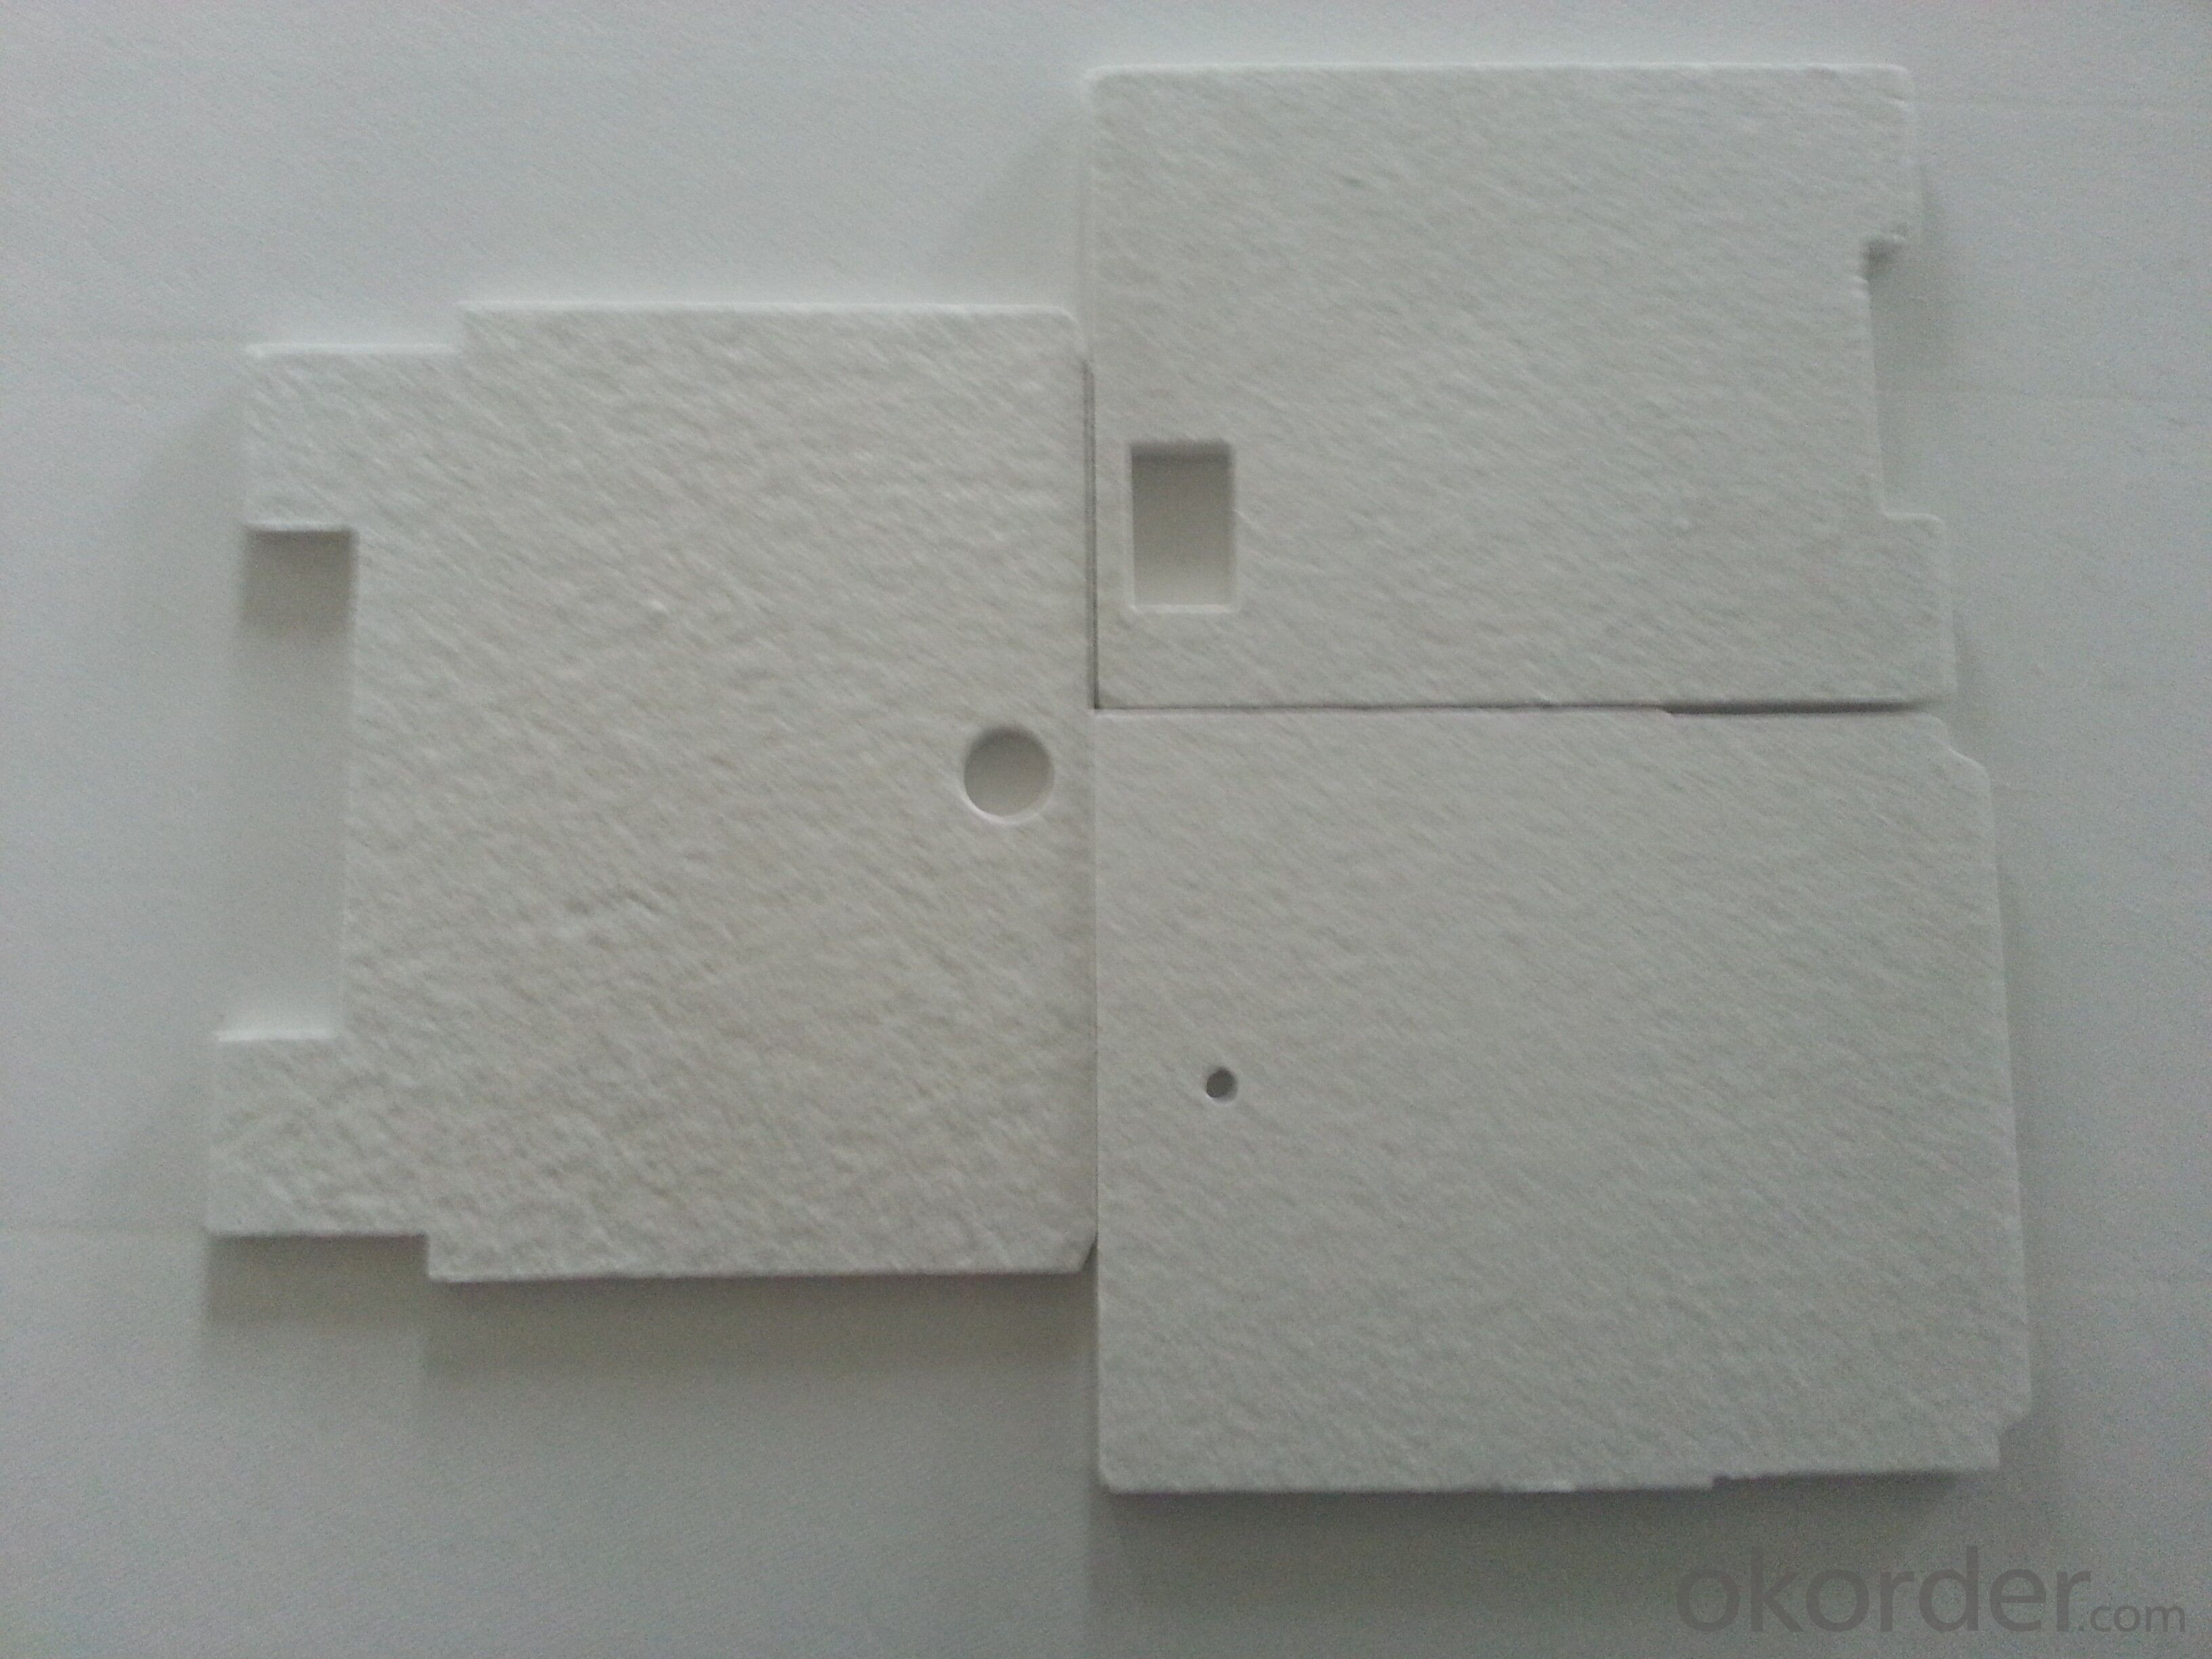 House using hot water heat insulating board